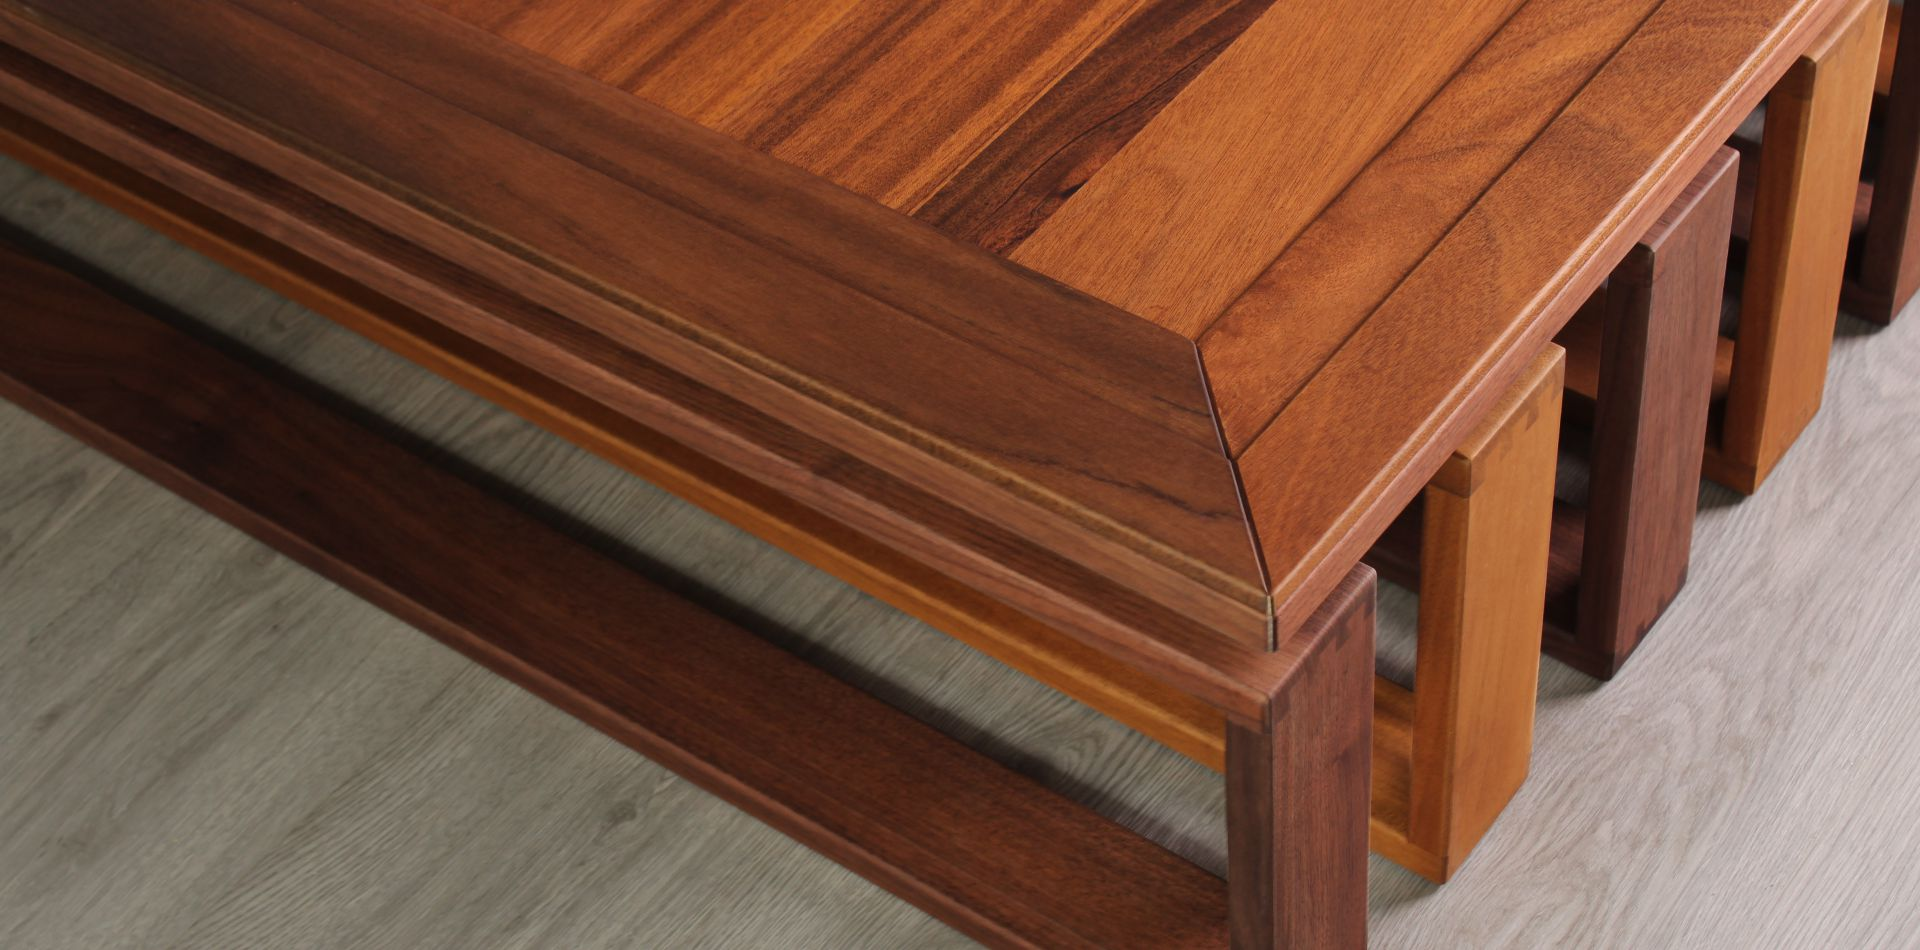 Alfred Center Table Detail   Wood Tailors Club - The Art of Craftsmanship